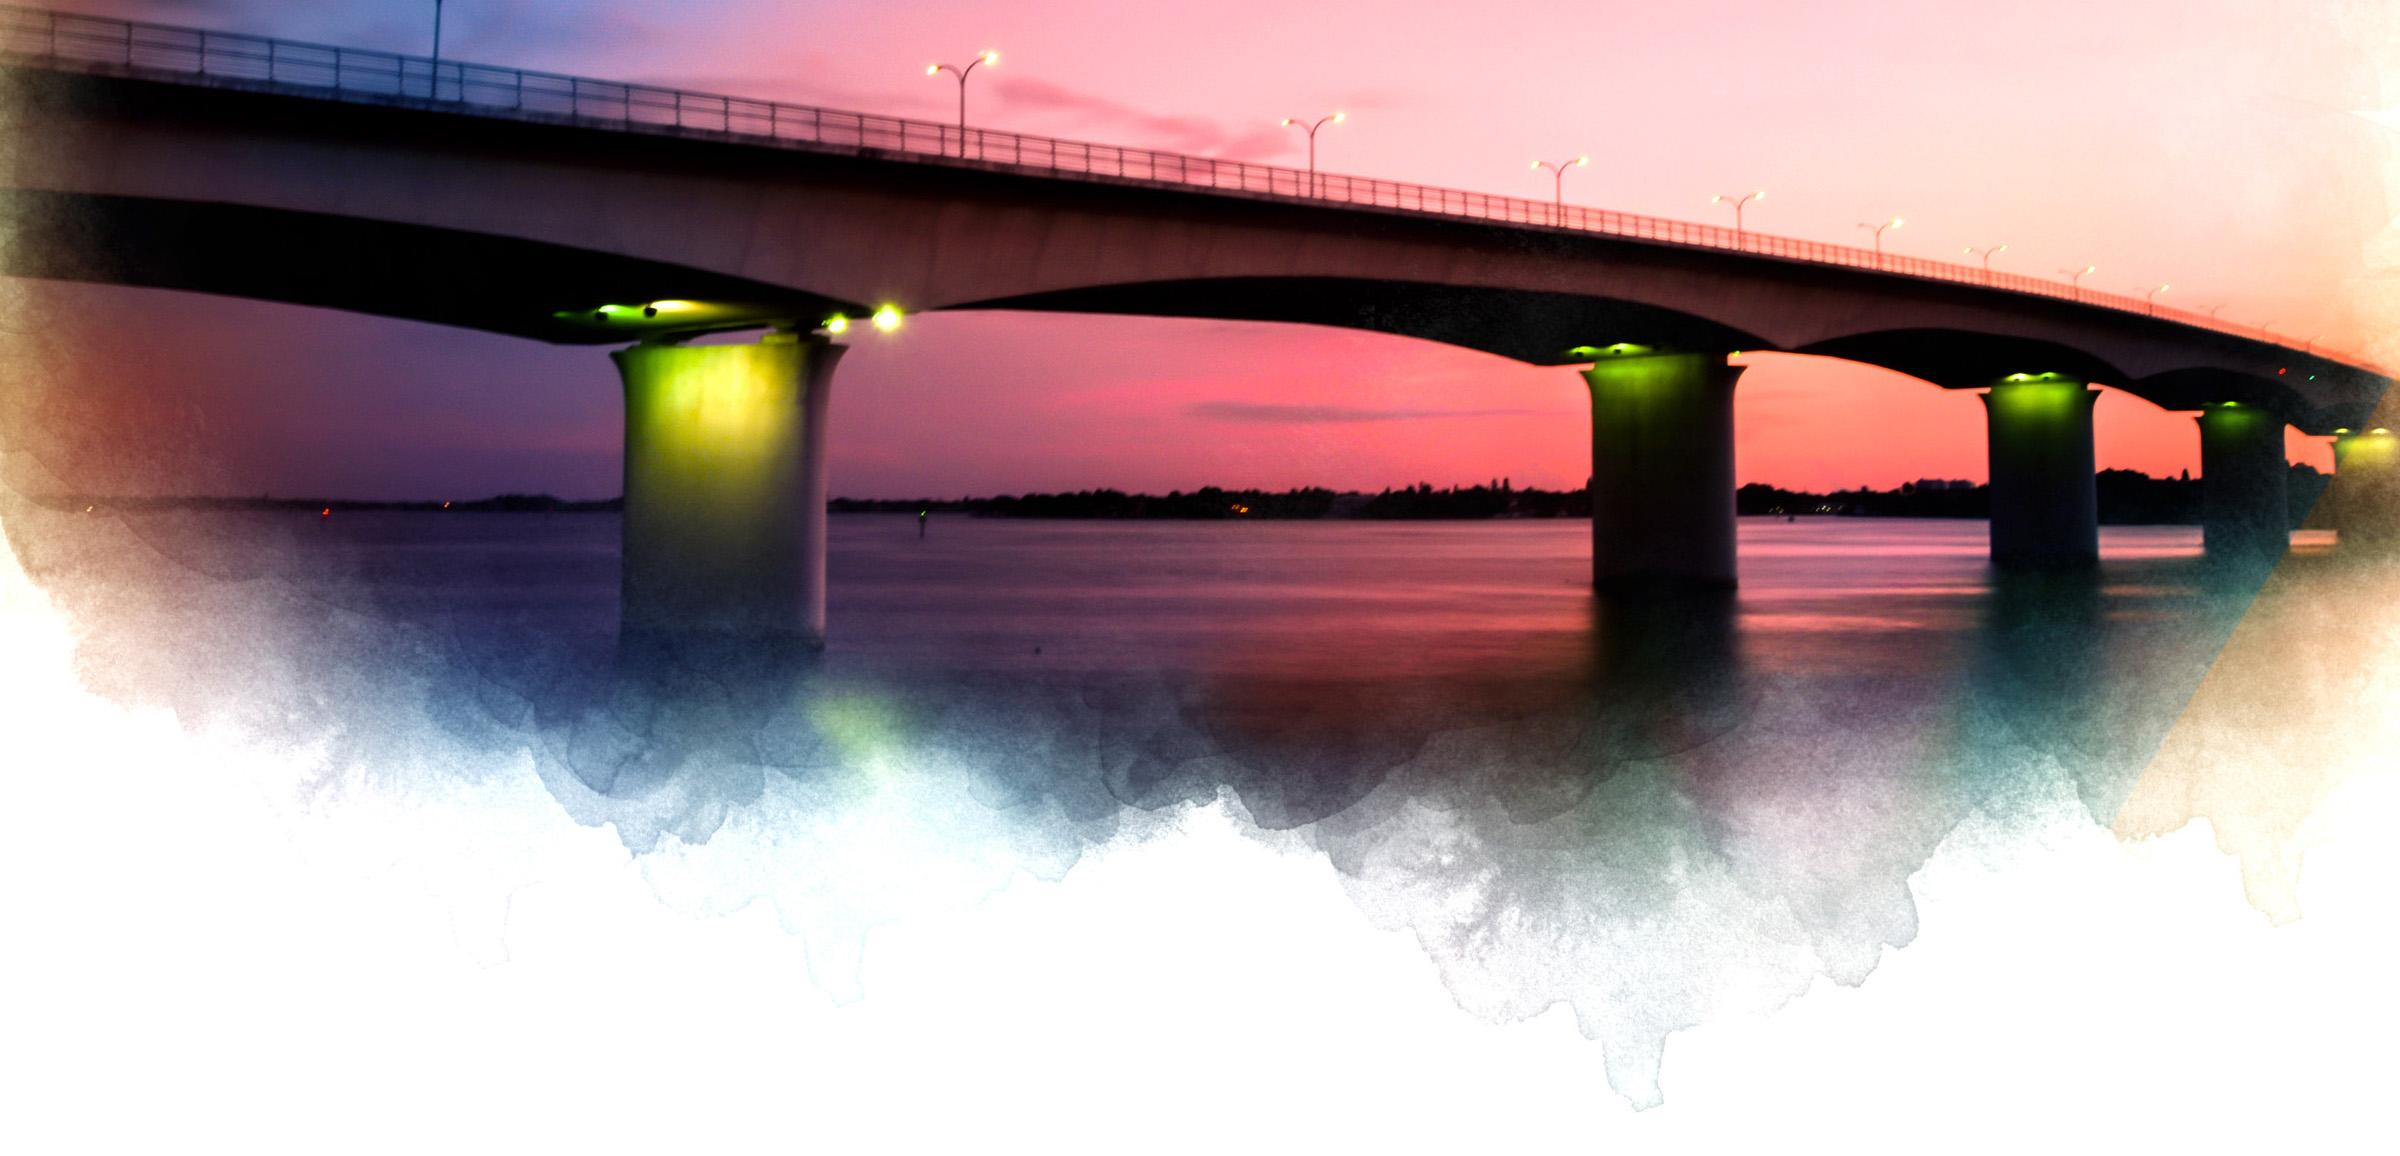 The Ringling Bridge at sunset